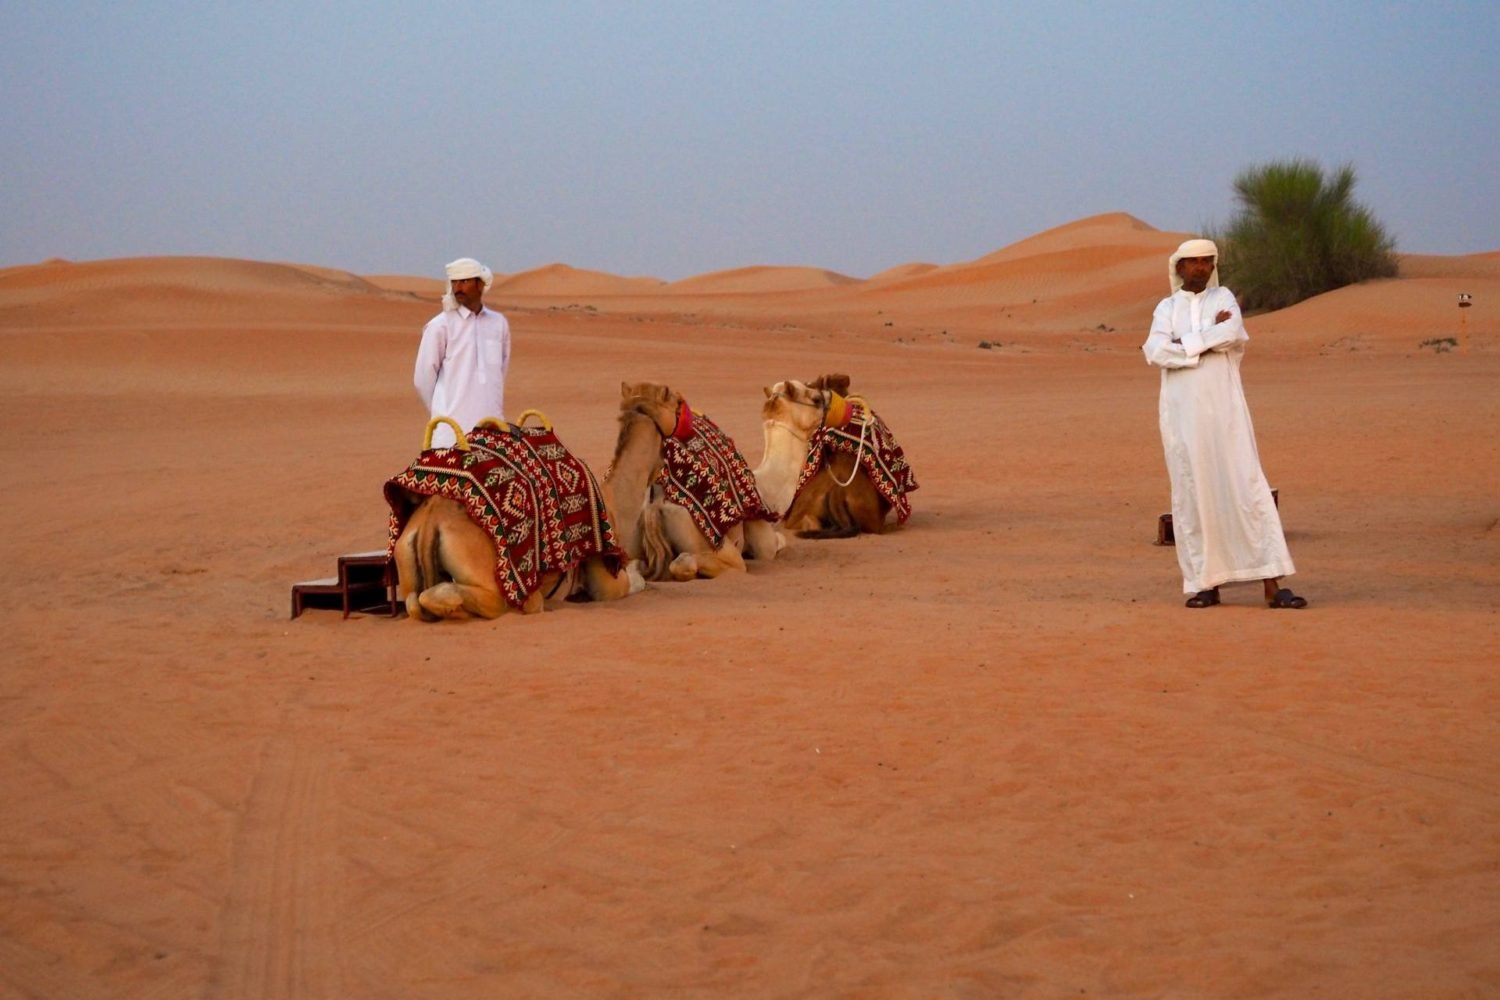 Camels and arab men sitting in the desert